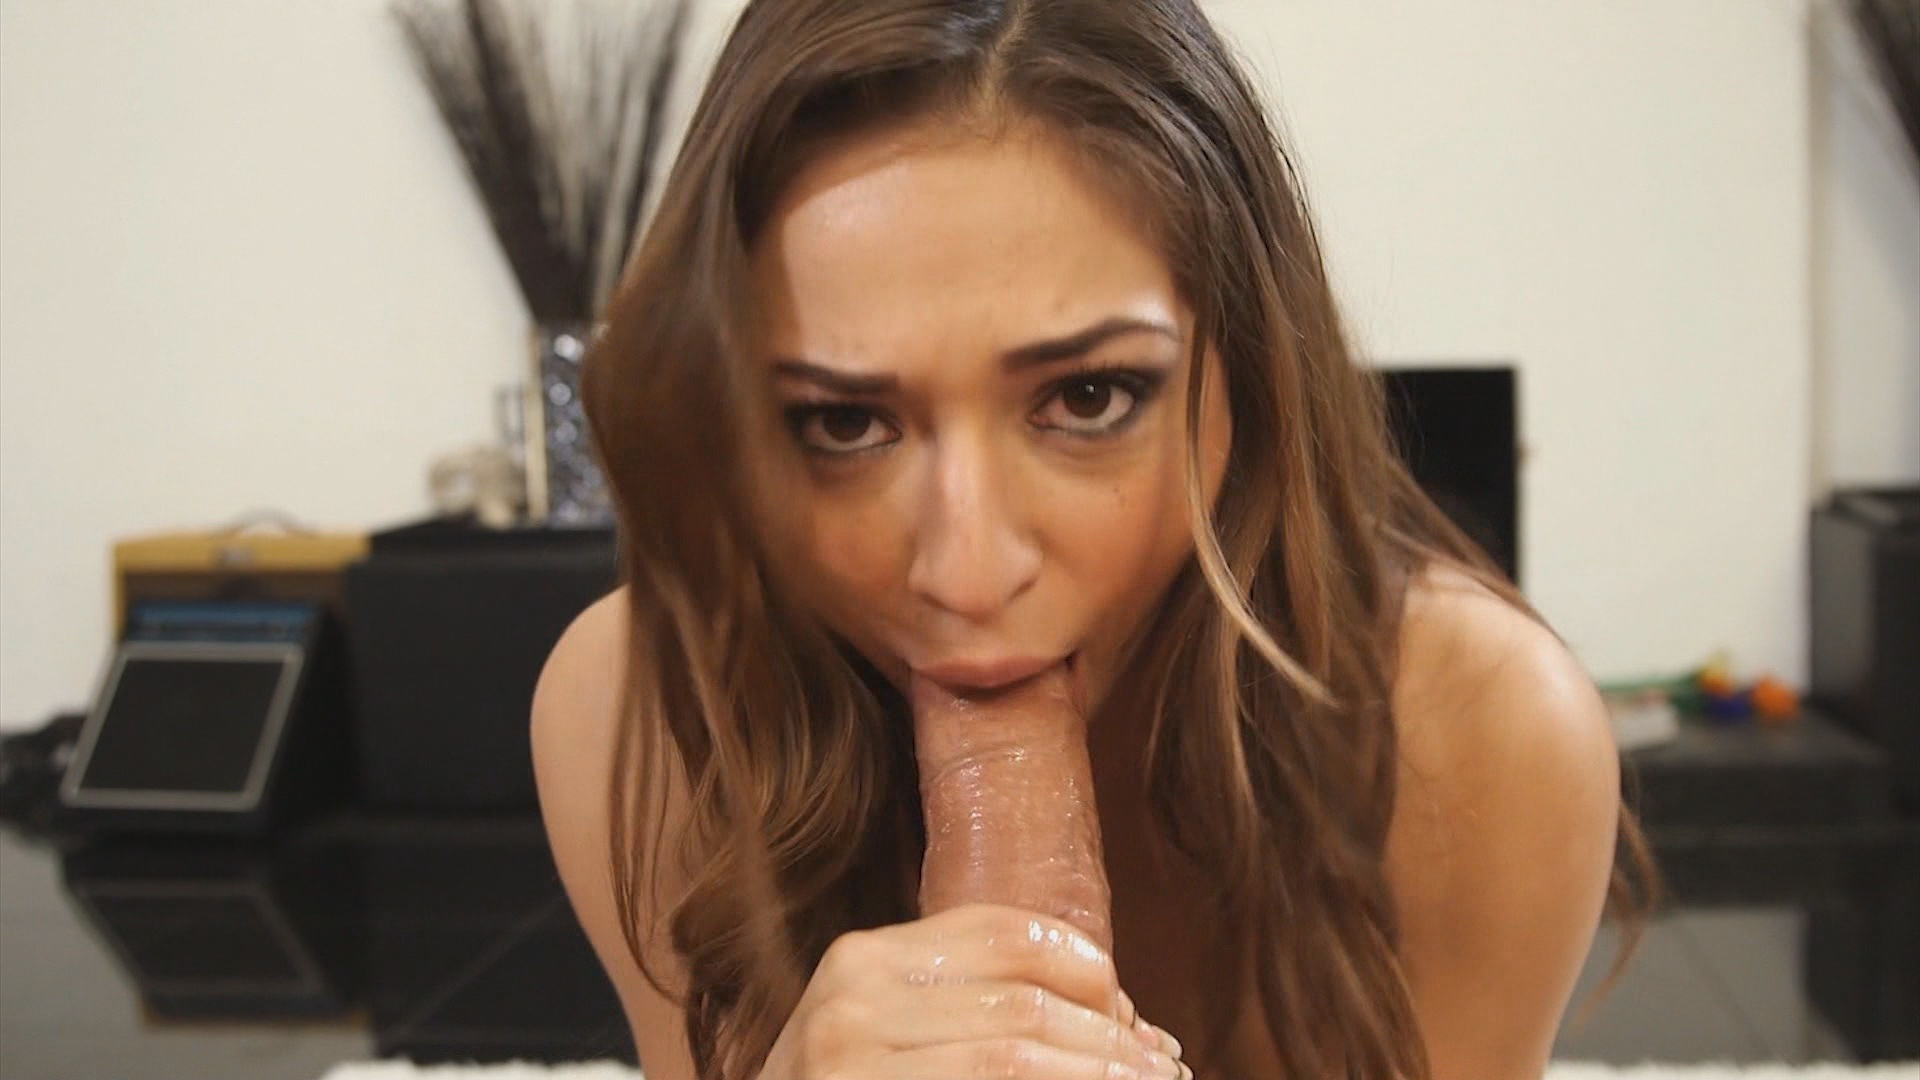 Teen Throated xvideos